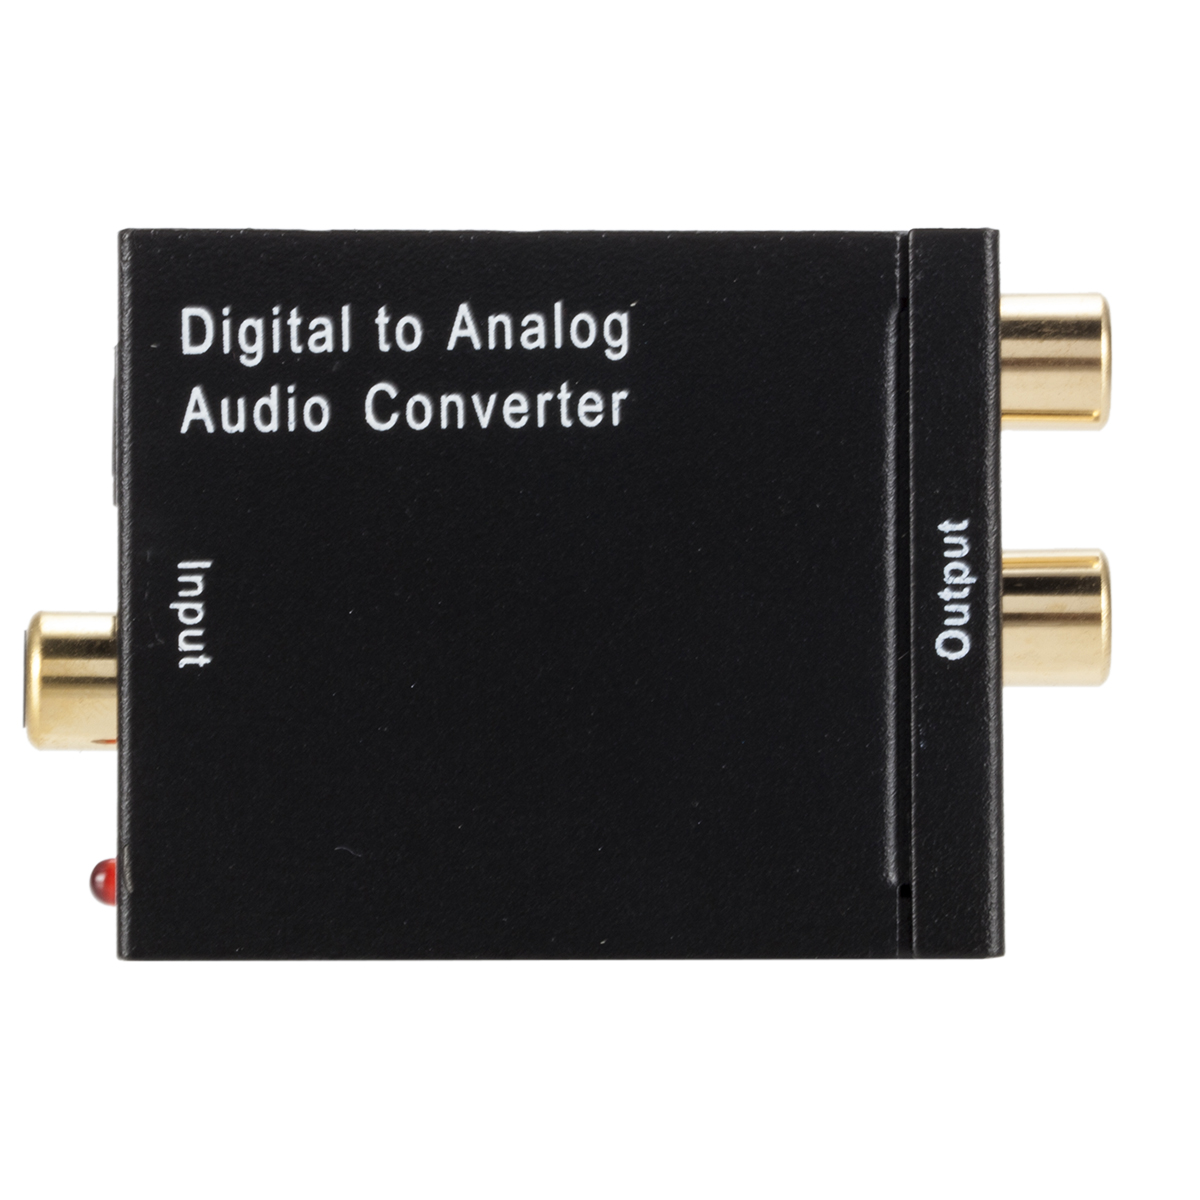 Grwibeou digital to analog audio converter fiber toslink coaxial - Audio dan video mudah alih - Foto 2